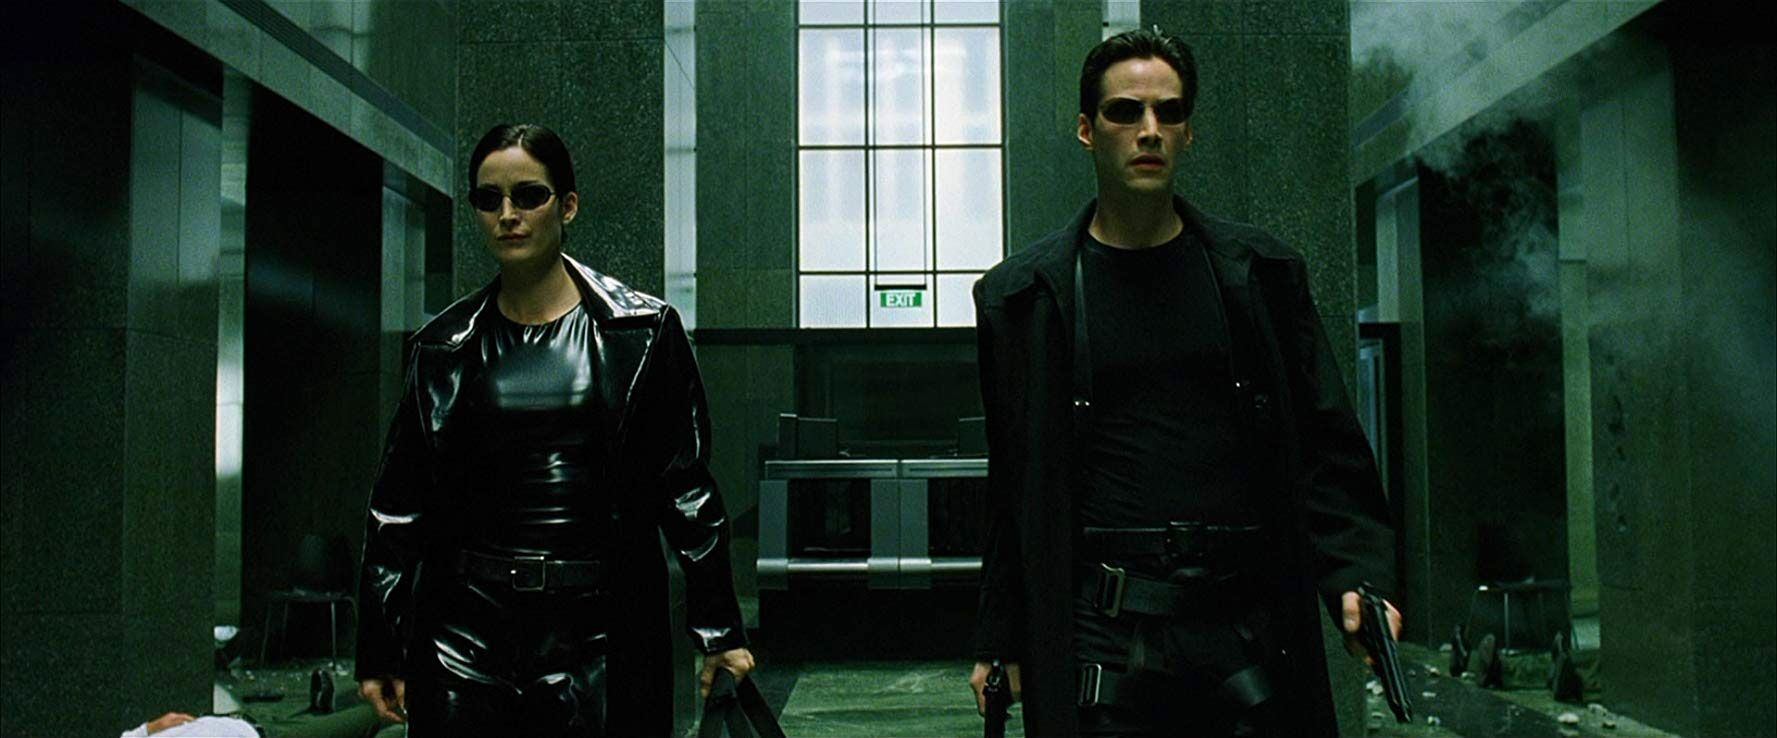 The Matrix 4 is officially a thing, but how will the franchise move forward?